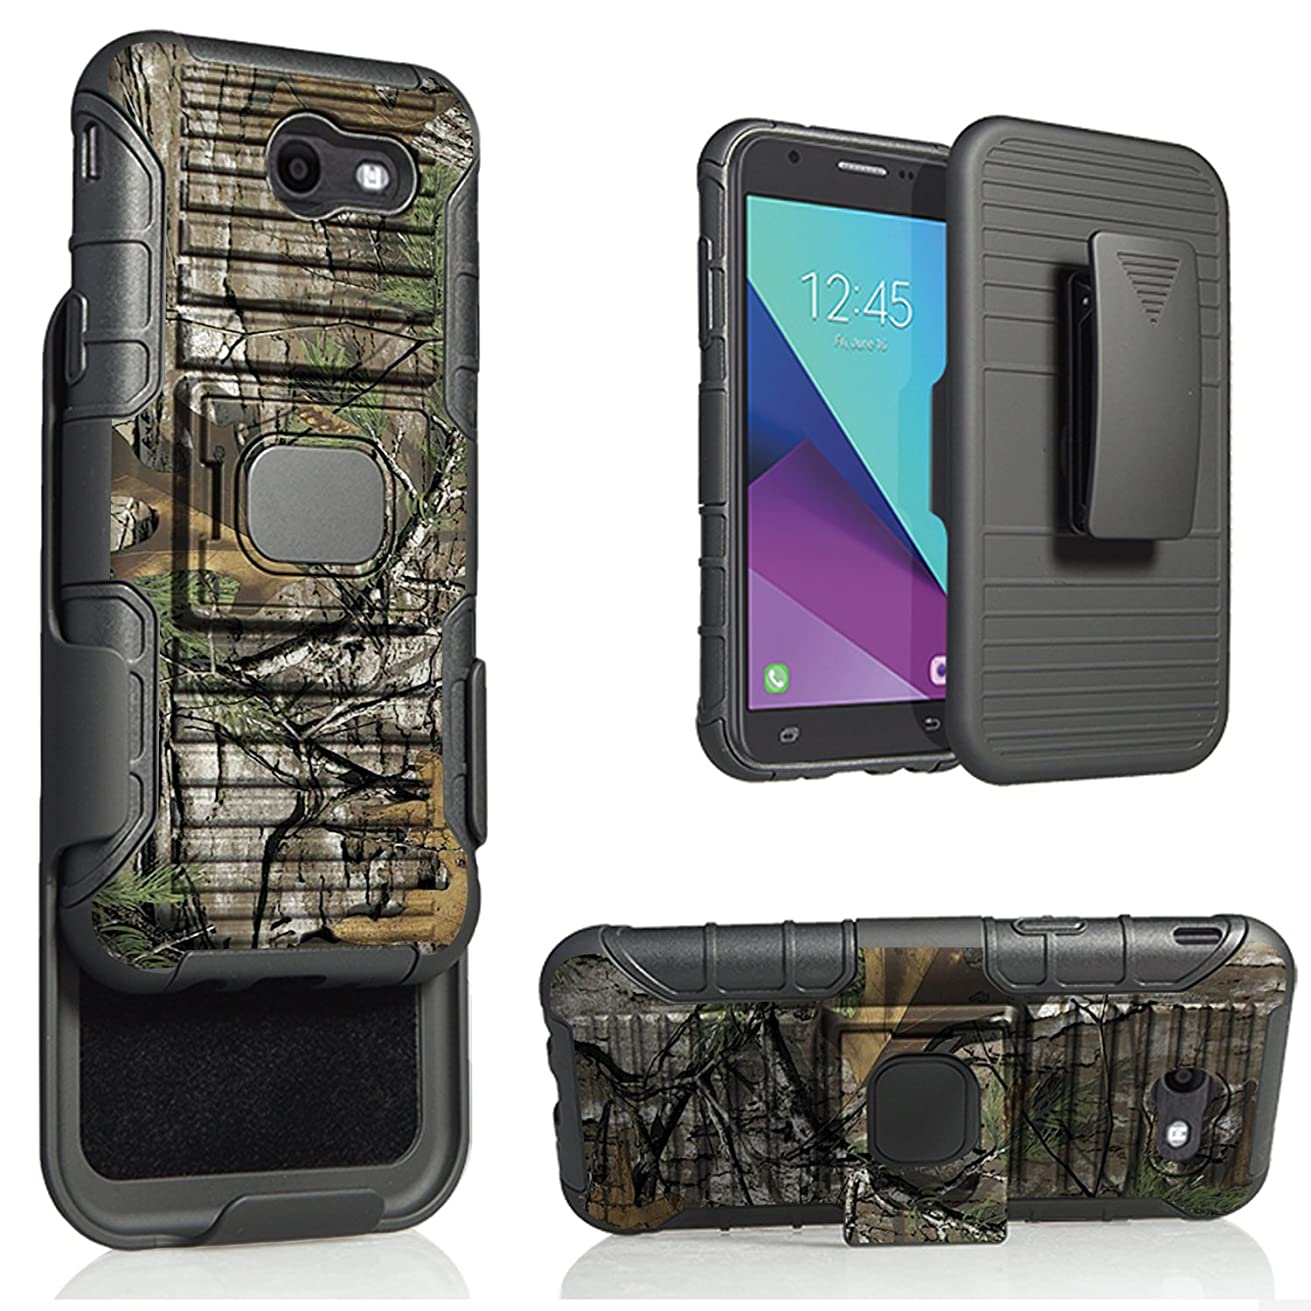 Galaxy J3 Prime Case Bundle With Tempered Glass Protector, Starshop W/Built-In Magnet And Ring For Galaxy J3 Emerge/Galaxy J3 Luna Pro/J3 Eclipse/J3 Mission/Express Prime 2/Sol 2/J3 2017 (Camo)